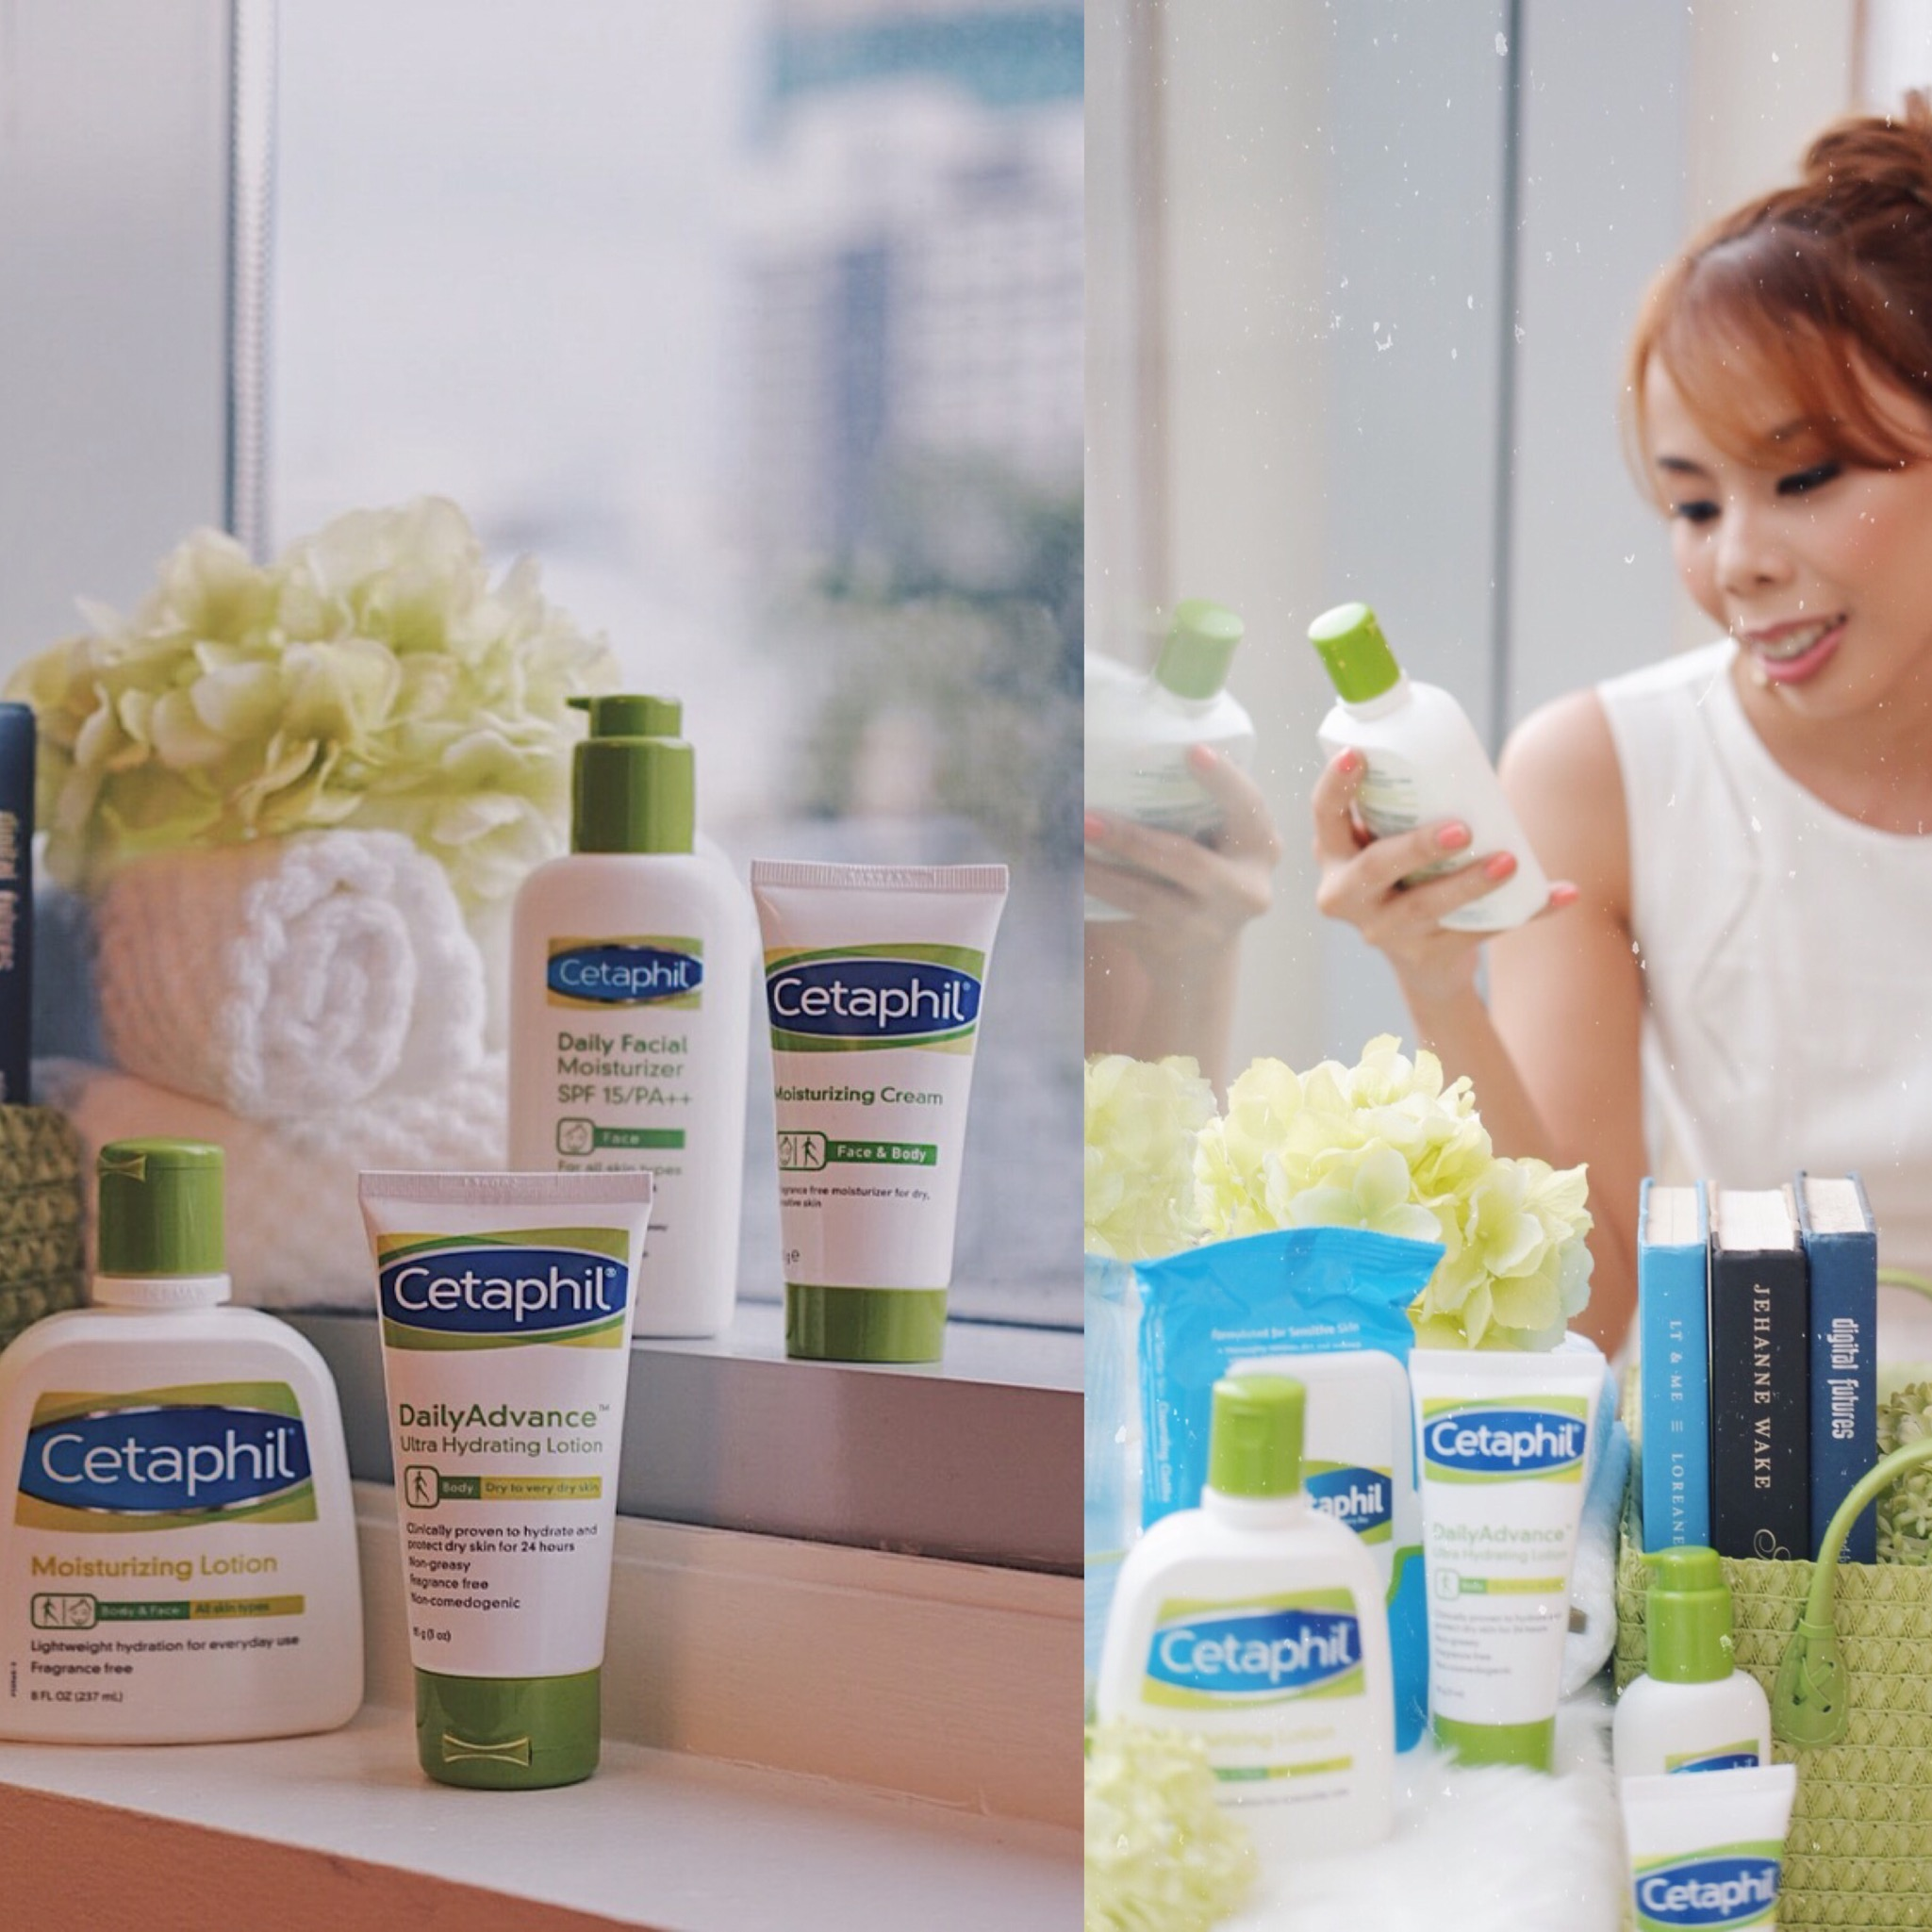 70 Years of Skin Love — Thank you Cetaphil!